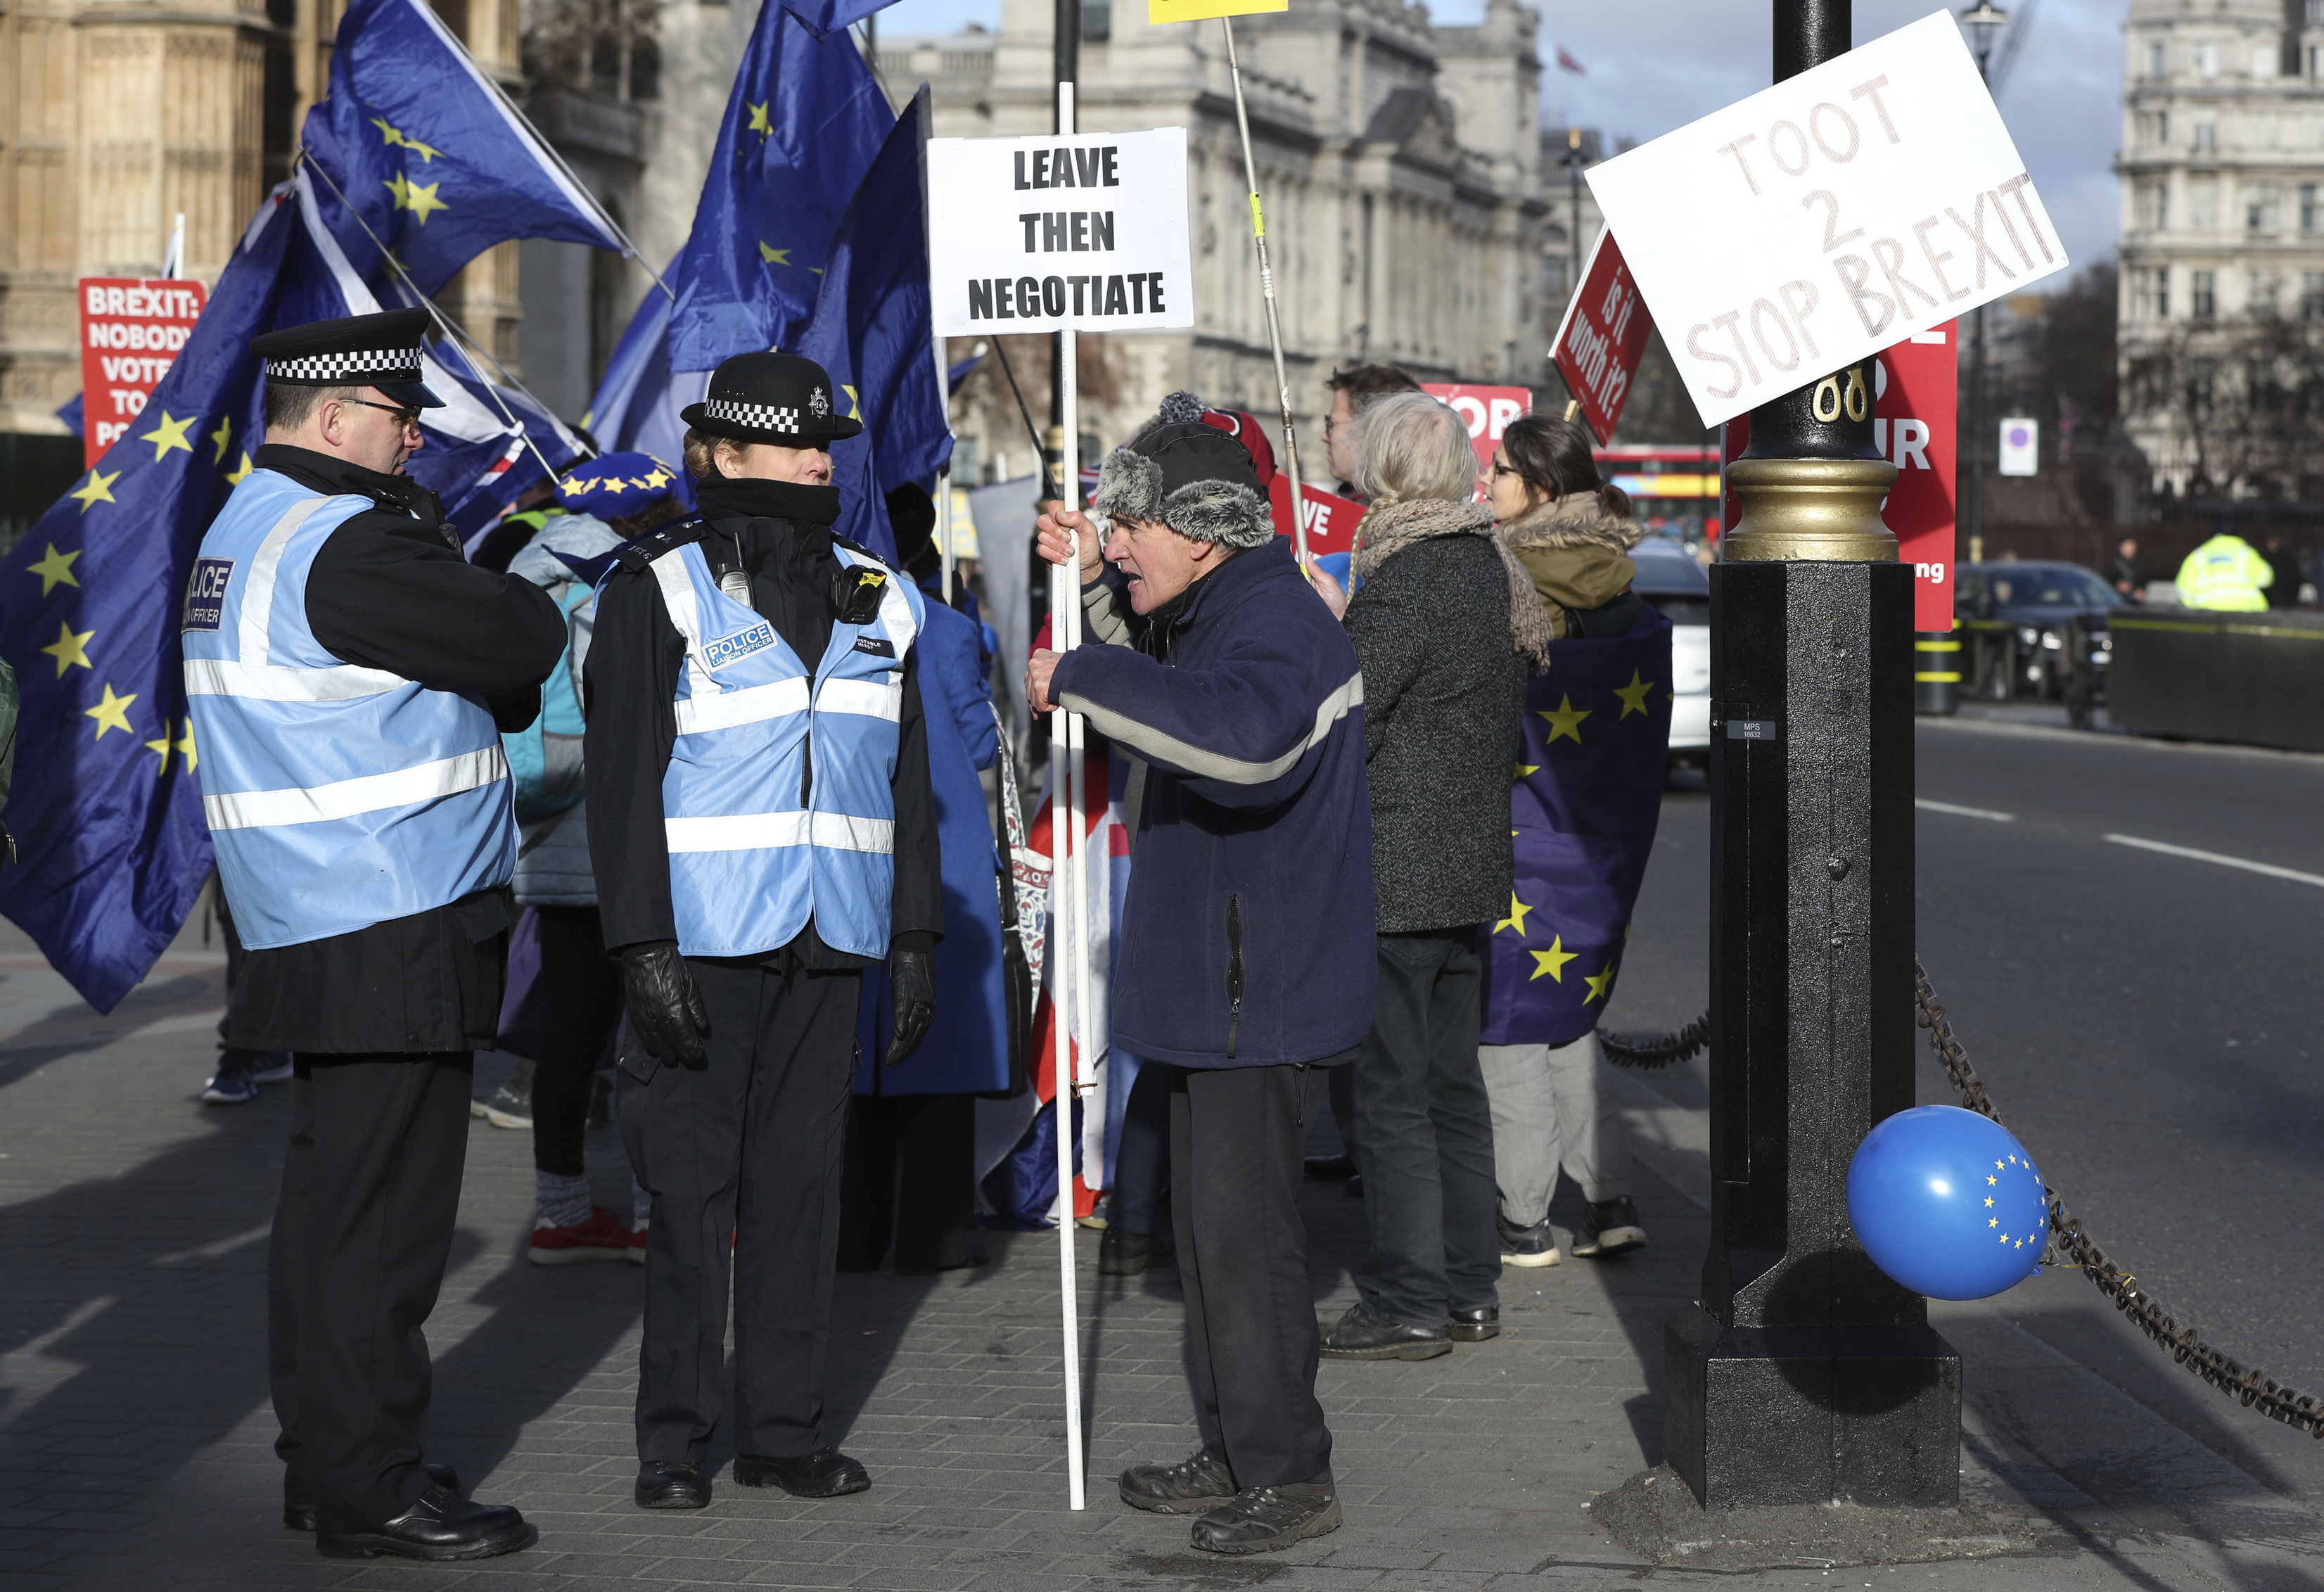 A protester argues with police liaison officers outside Parliament in London, with police briefed to keep law and order in the area, as various Brexit protesters demonstrate in London. Now in the U.K., it's more common to see police liaison officers, who wear blue vests and specialize in communicating with protestors. (Jonathan Brady/PA via AP)